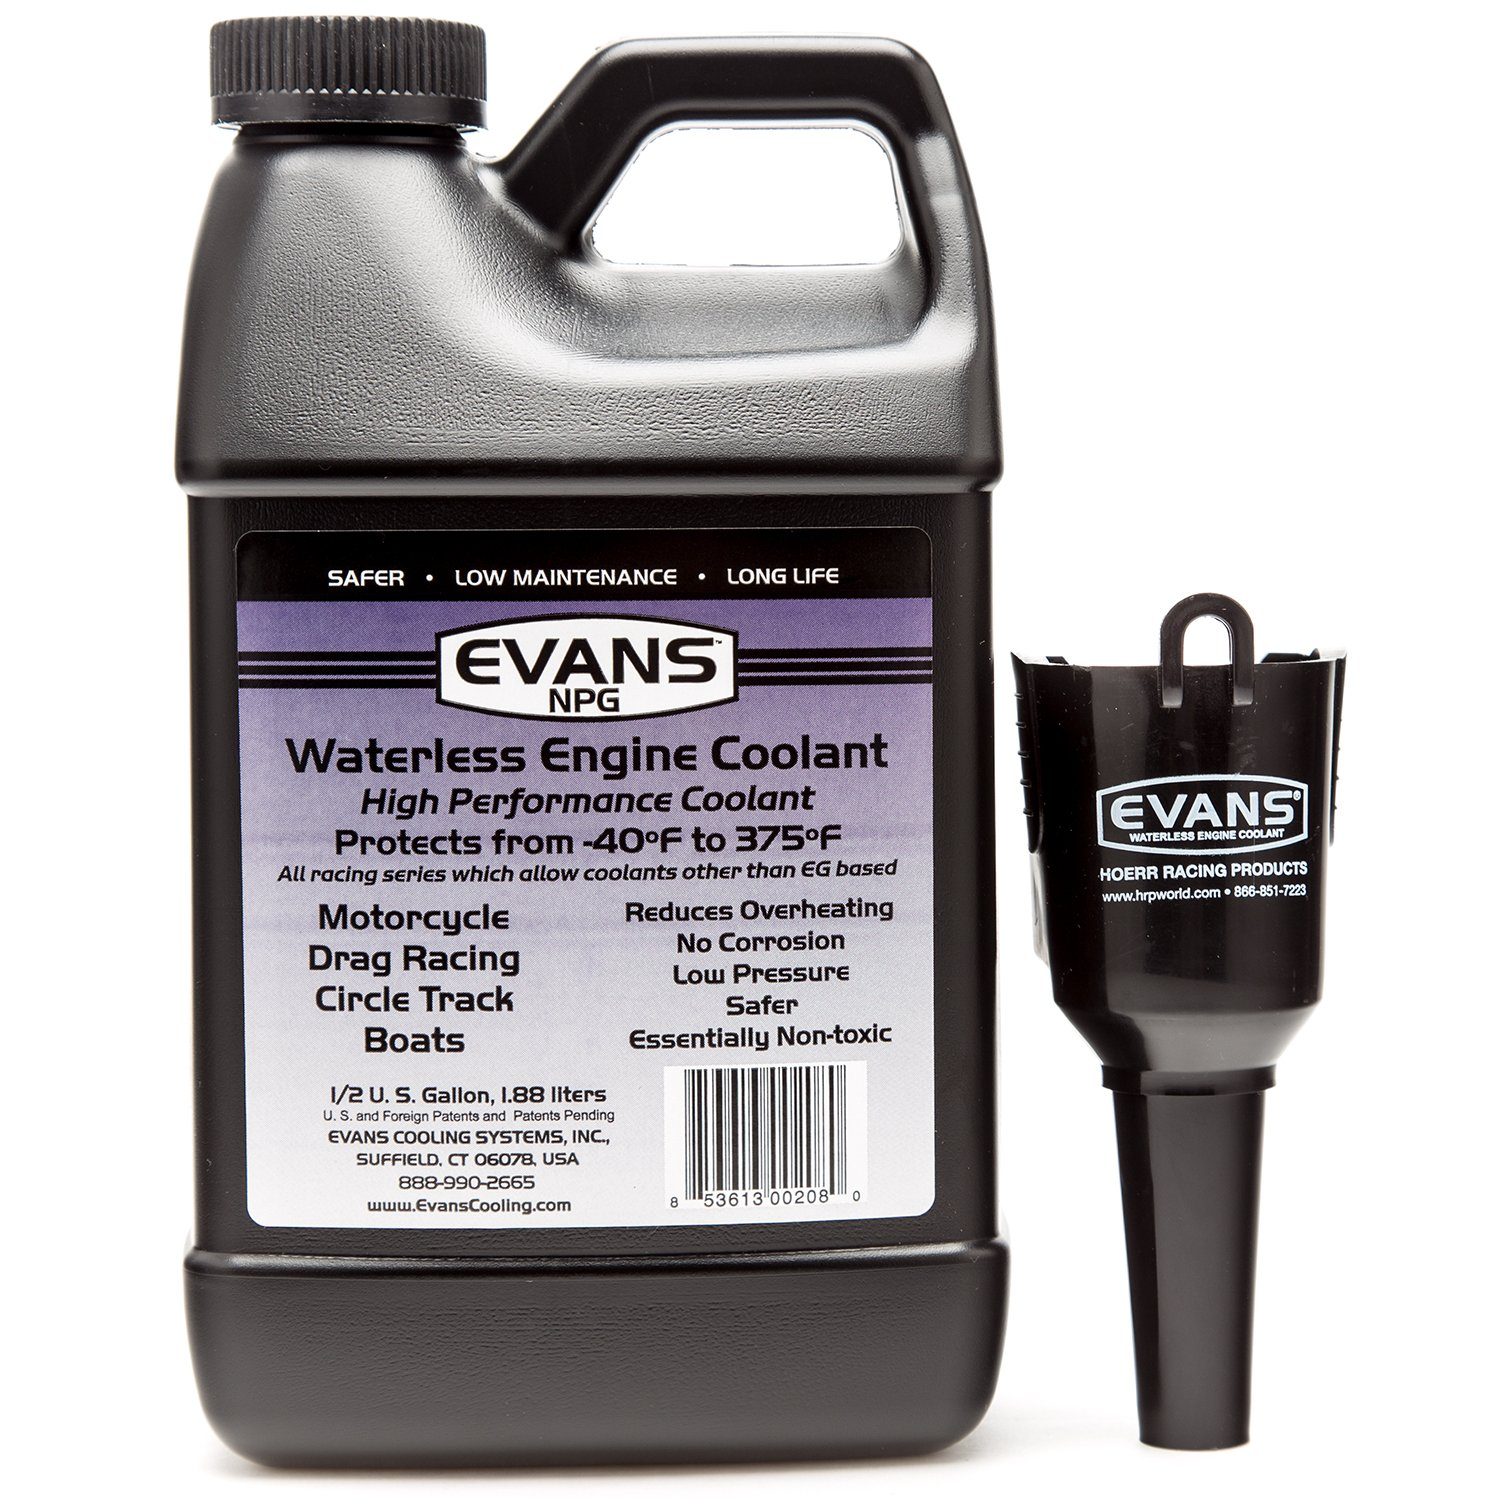 EVANS Coolant EC10064 Waterless Engine Coolant, 64 fl. oz. with Funnel